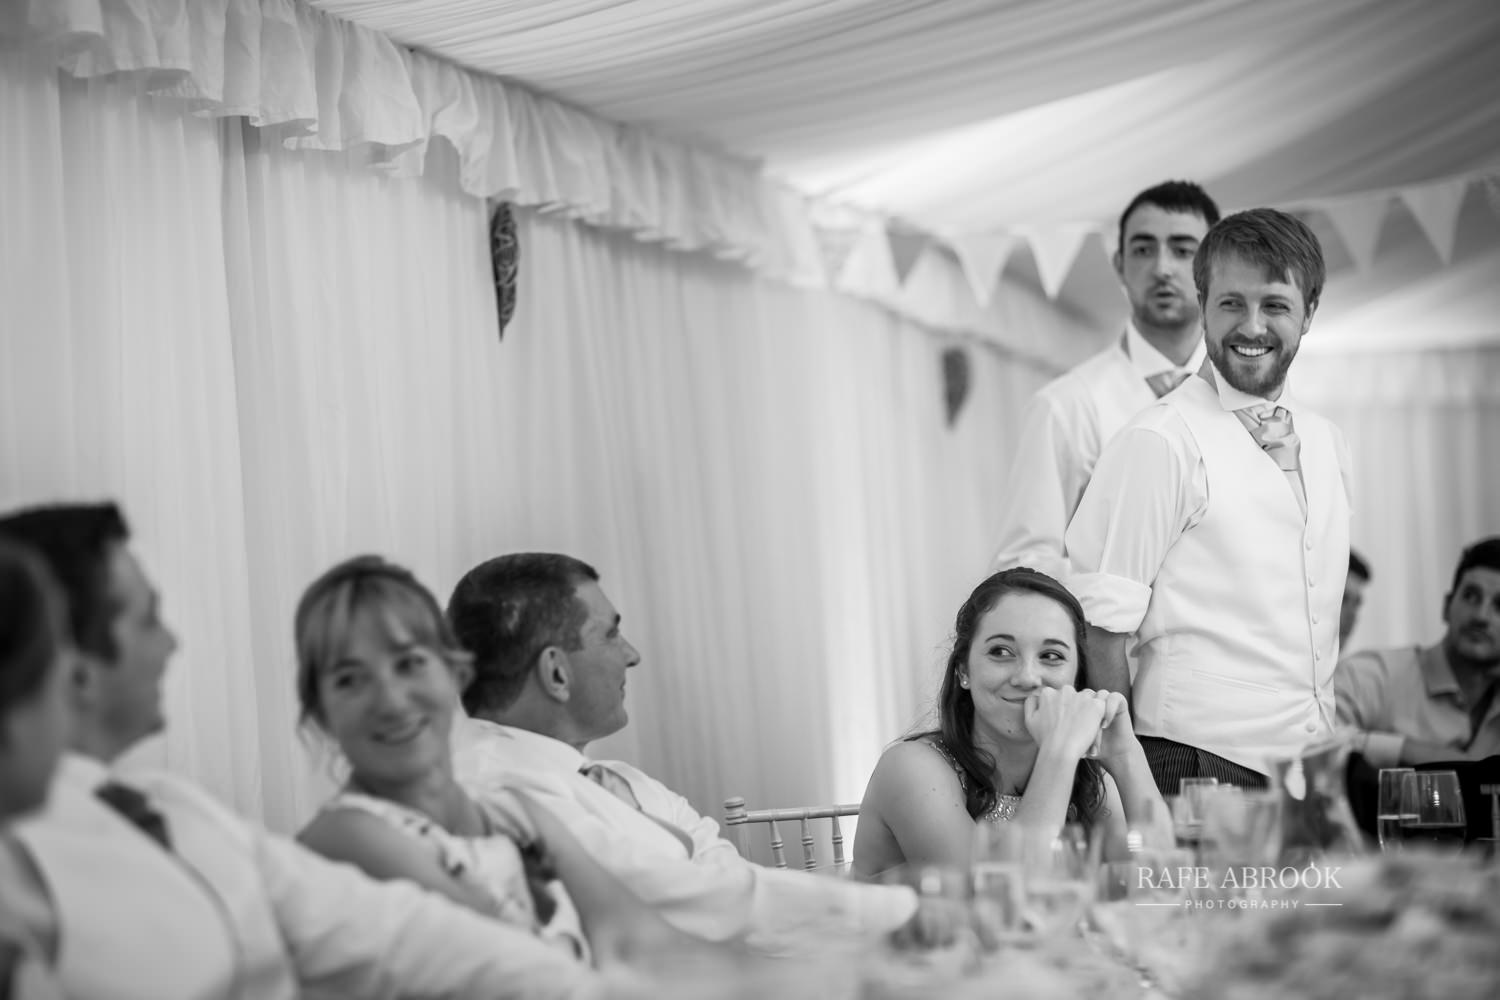 st albans cathedral wedding harpenden rafe abrook photography hertfordshire wedding photographer-1042.jpg